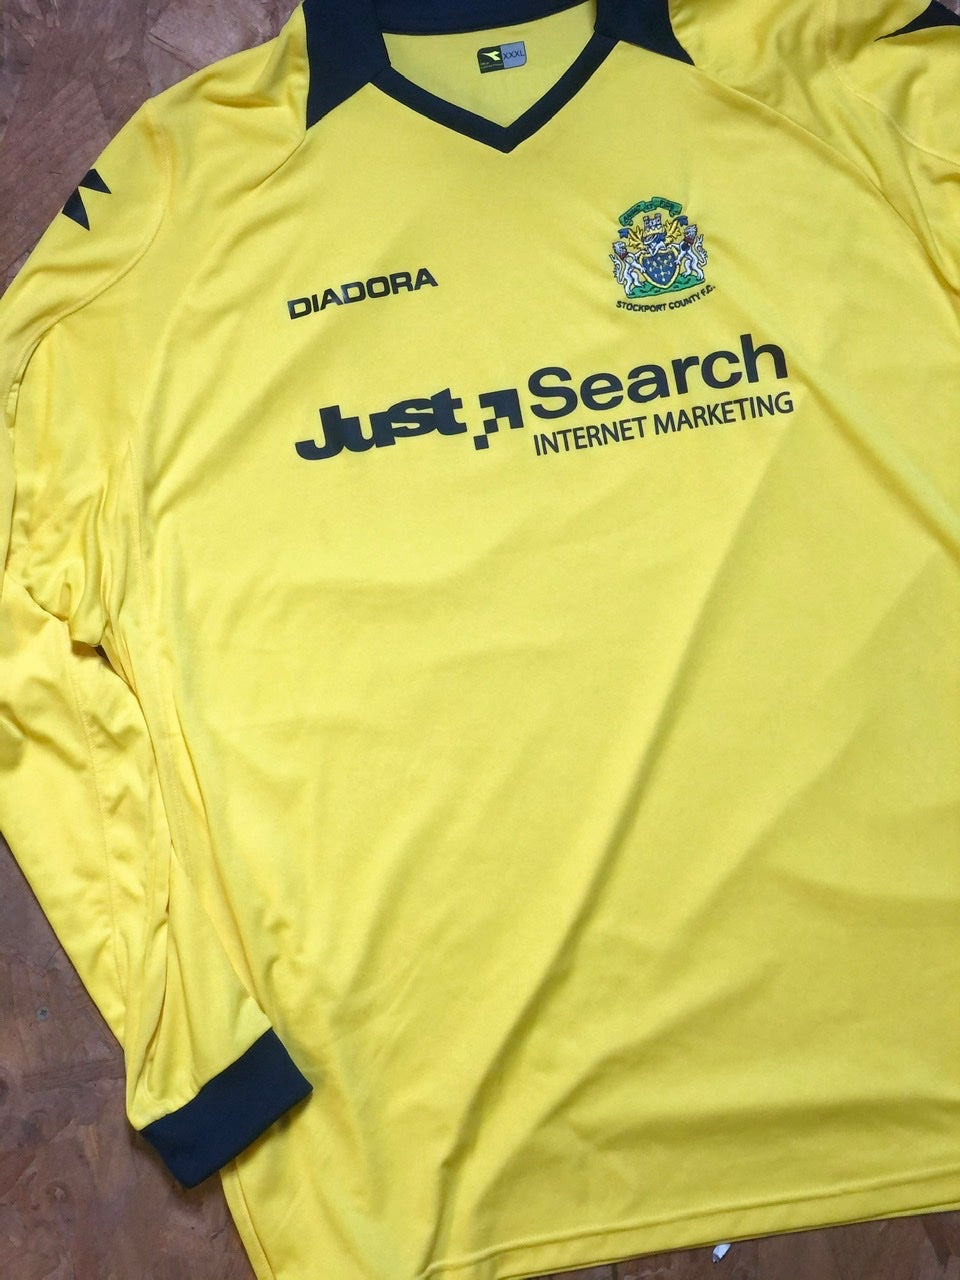 Image of Replica 2008/09 Diadora Away Goalkeeper Shirt